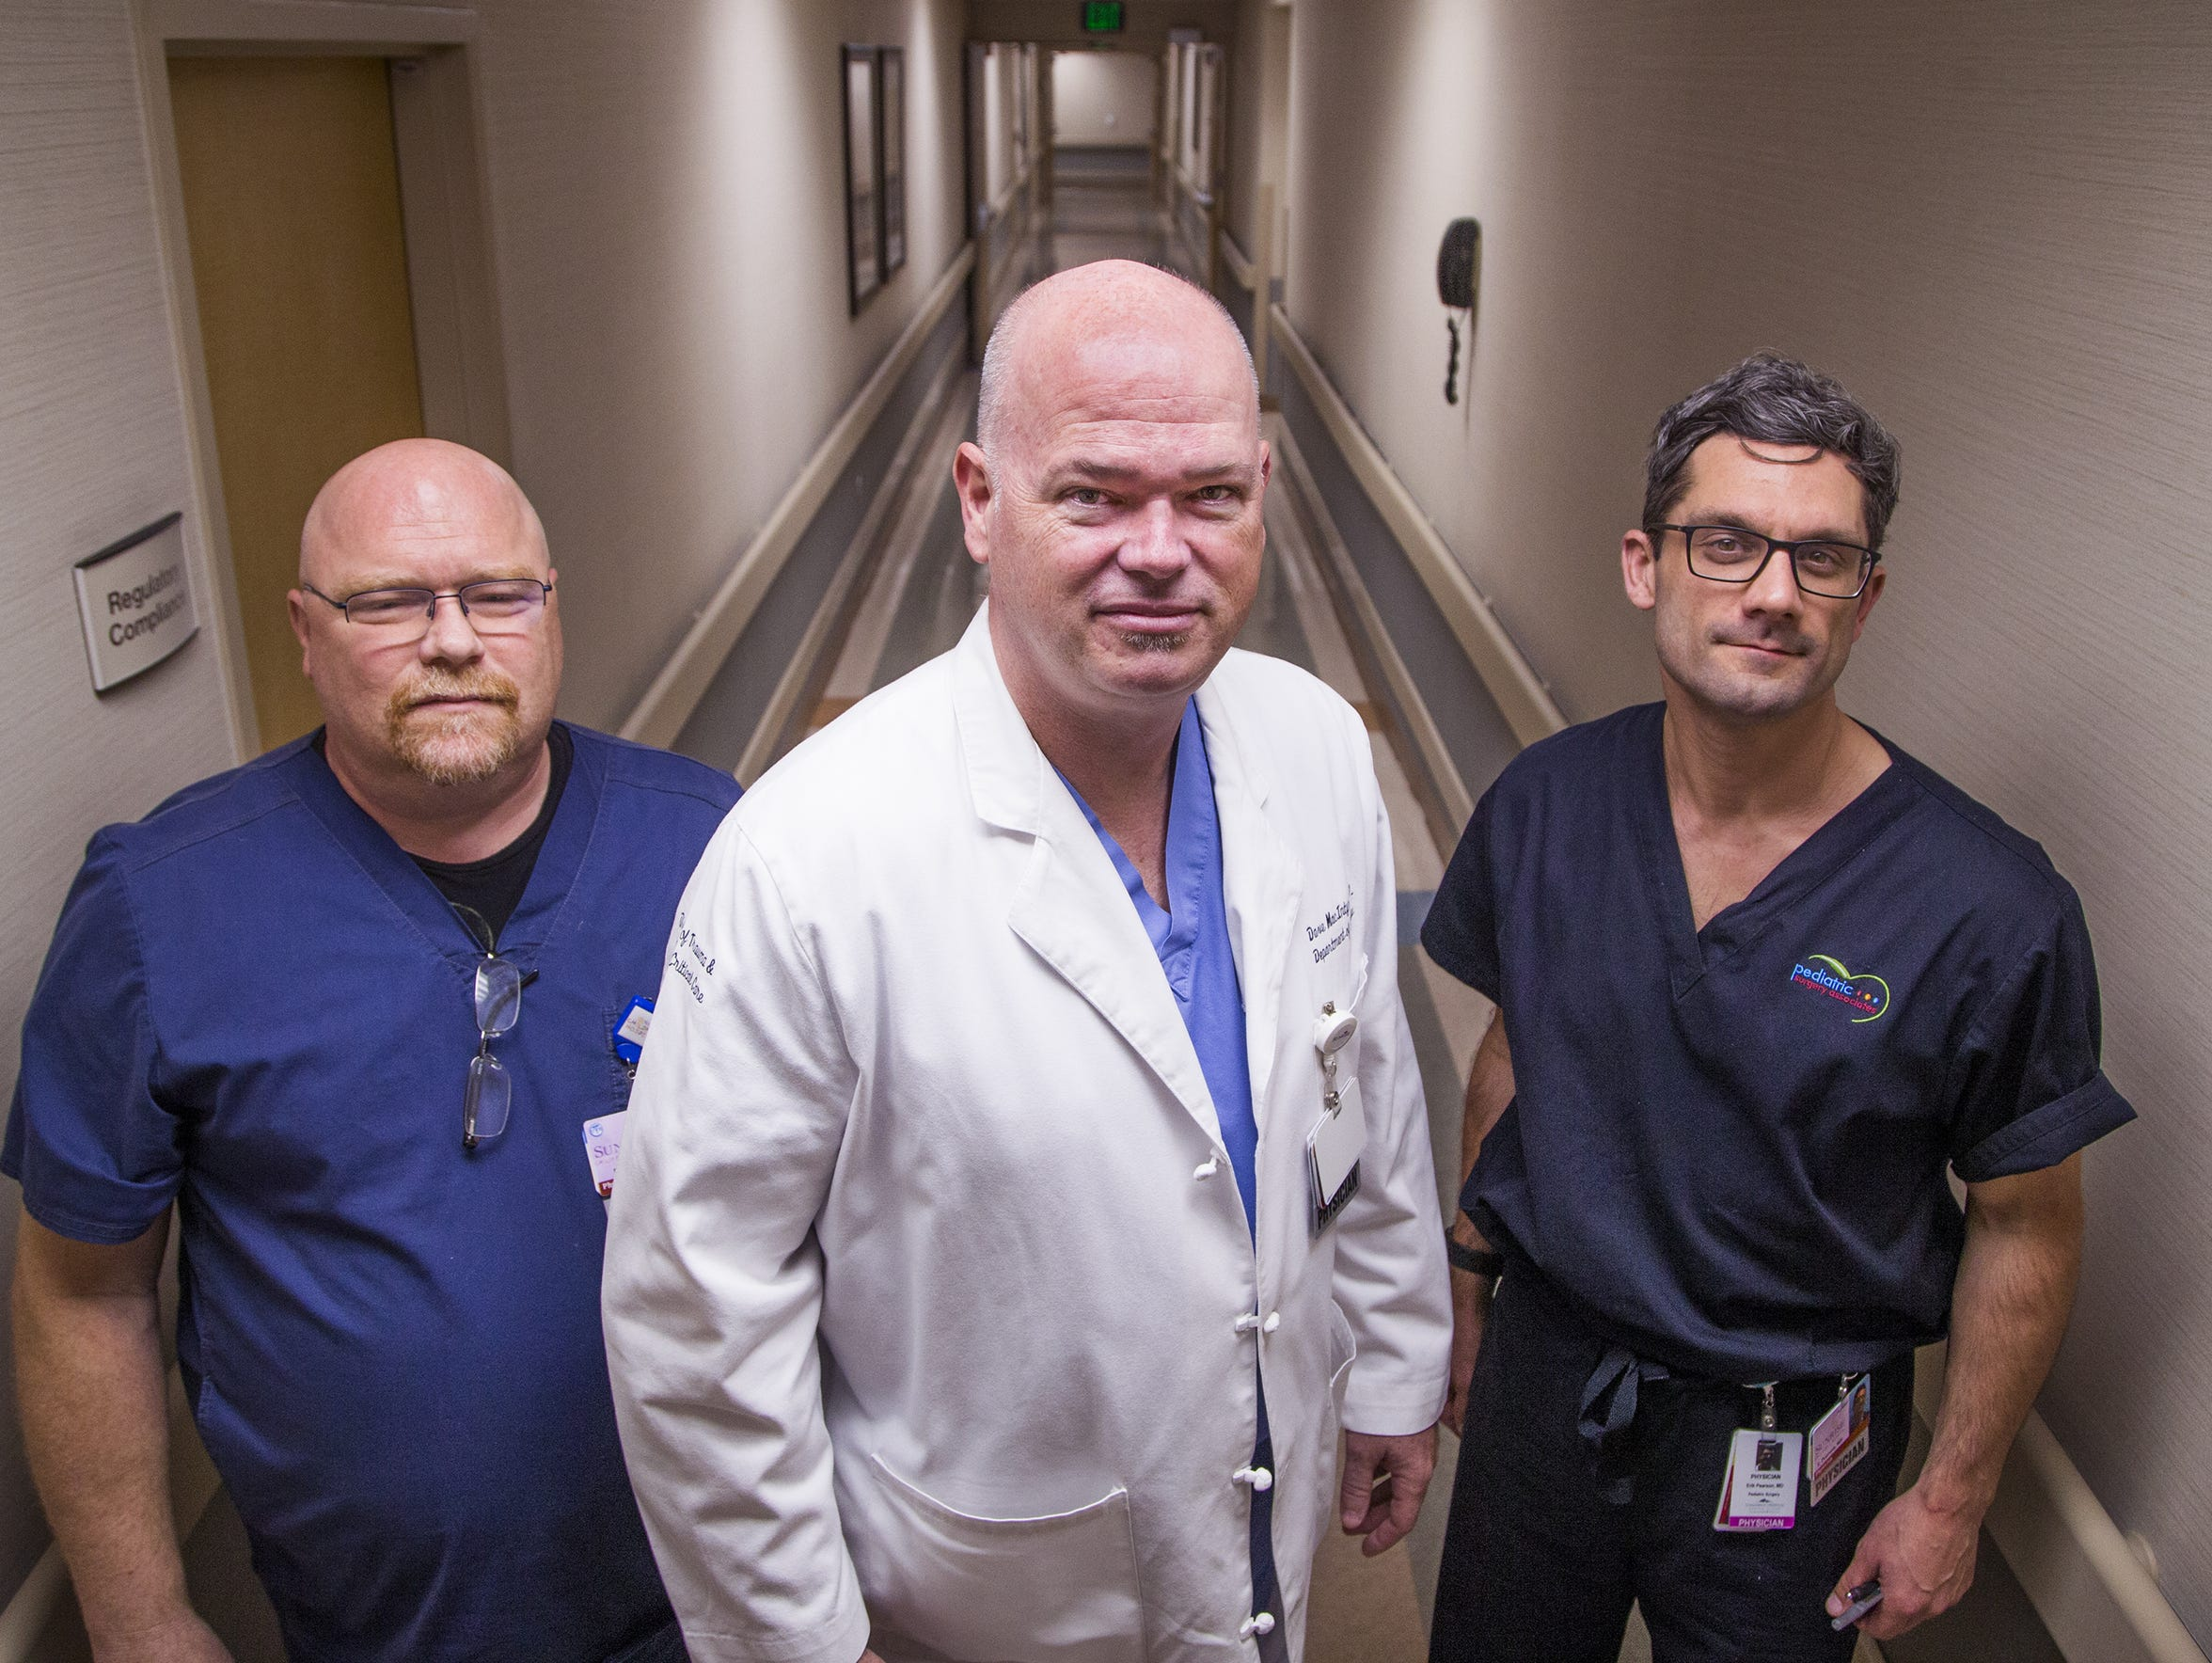 Trauma surgeon Dr. Dave MacIntyre (middle) and pediatric physicians Drs. Jim Andrus (left) and Erik Pearson.